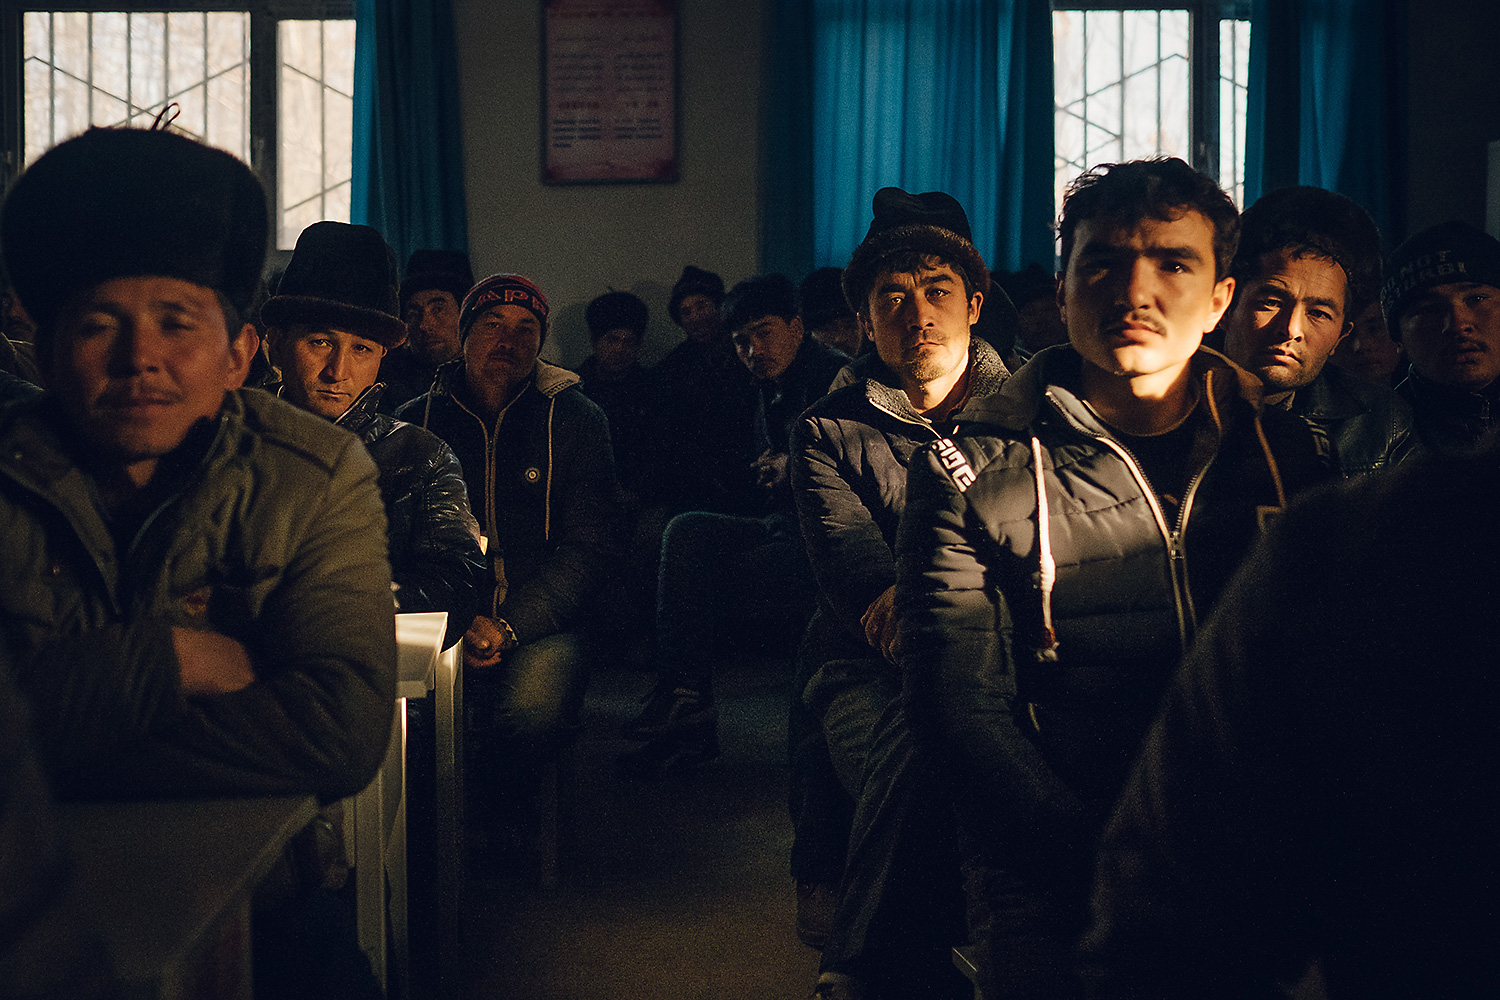 Uighur villagers attend a weekly presentation, led by local Uighur cadres, to discuss development projects. The government hopes that economic development will quell separatism.